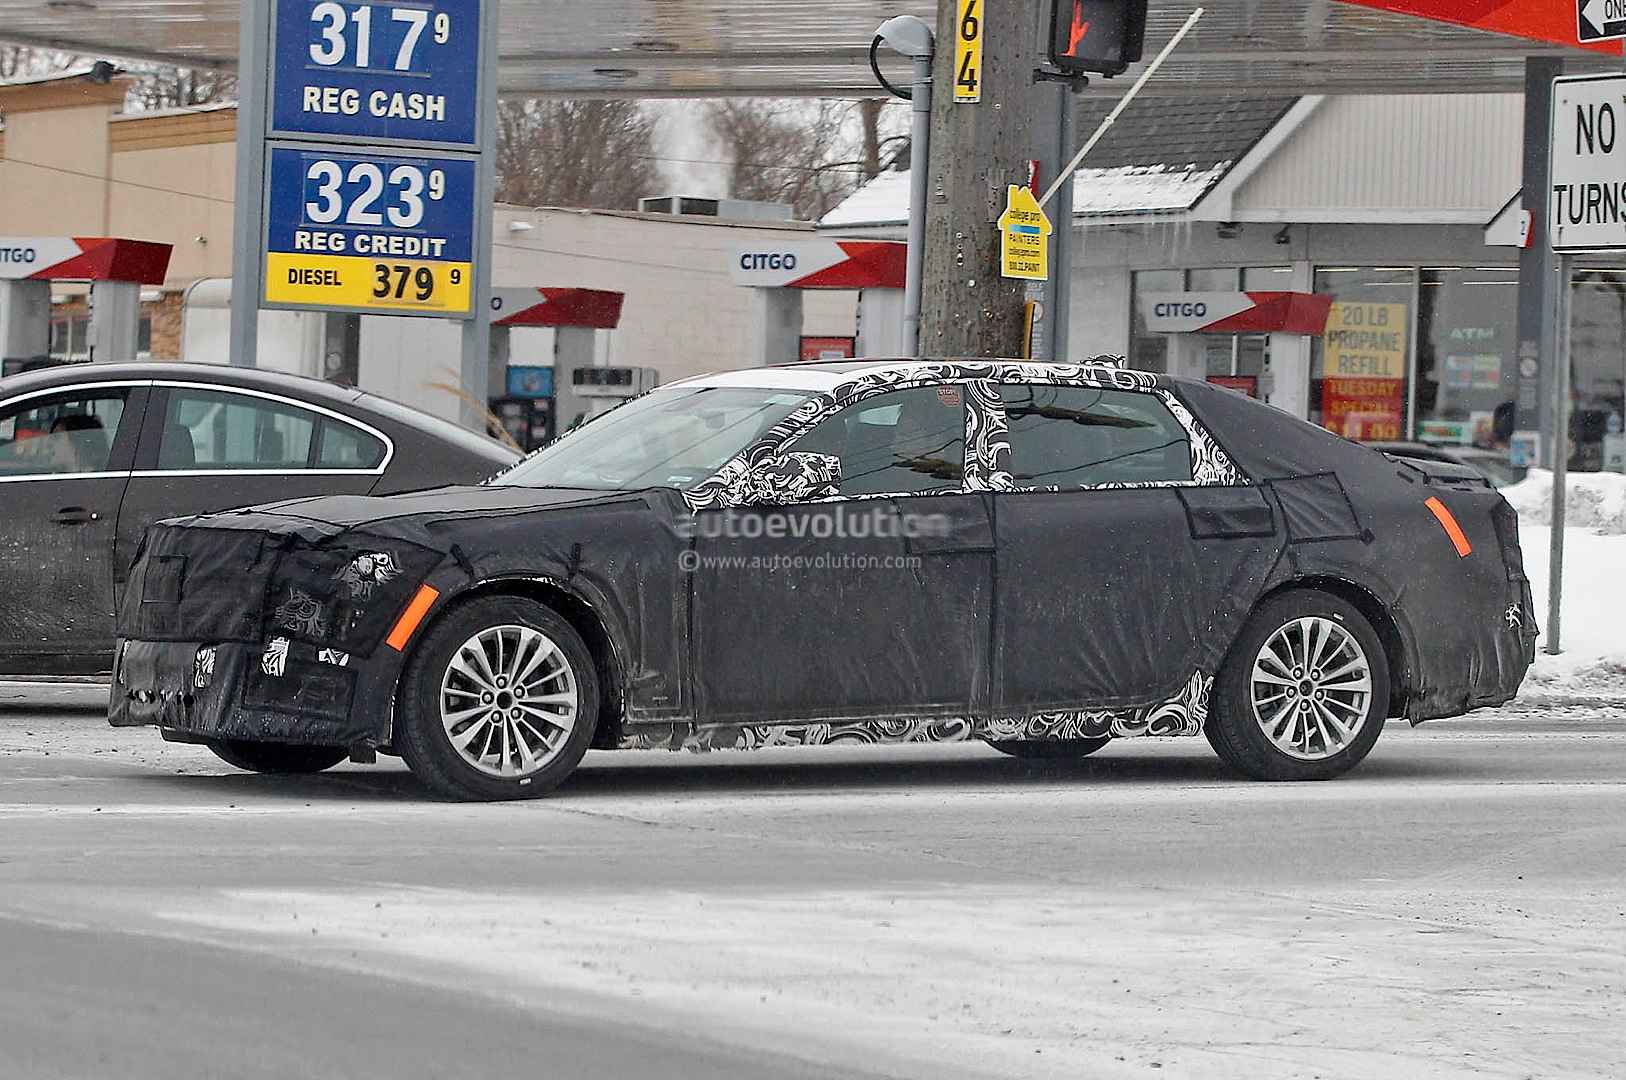 Ed welburn hints that elmiraj is actually a cts coupe replacement autoevolution